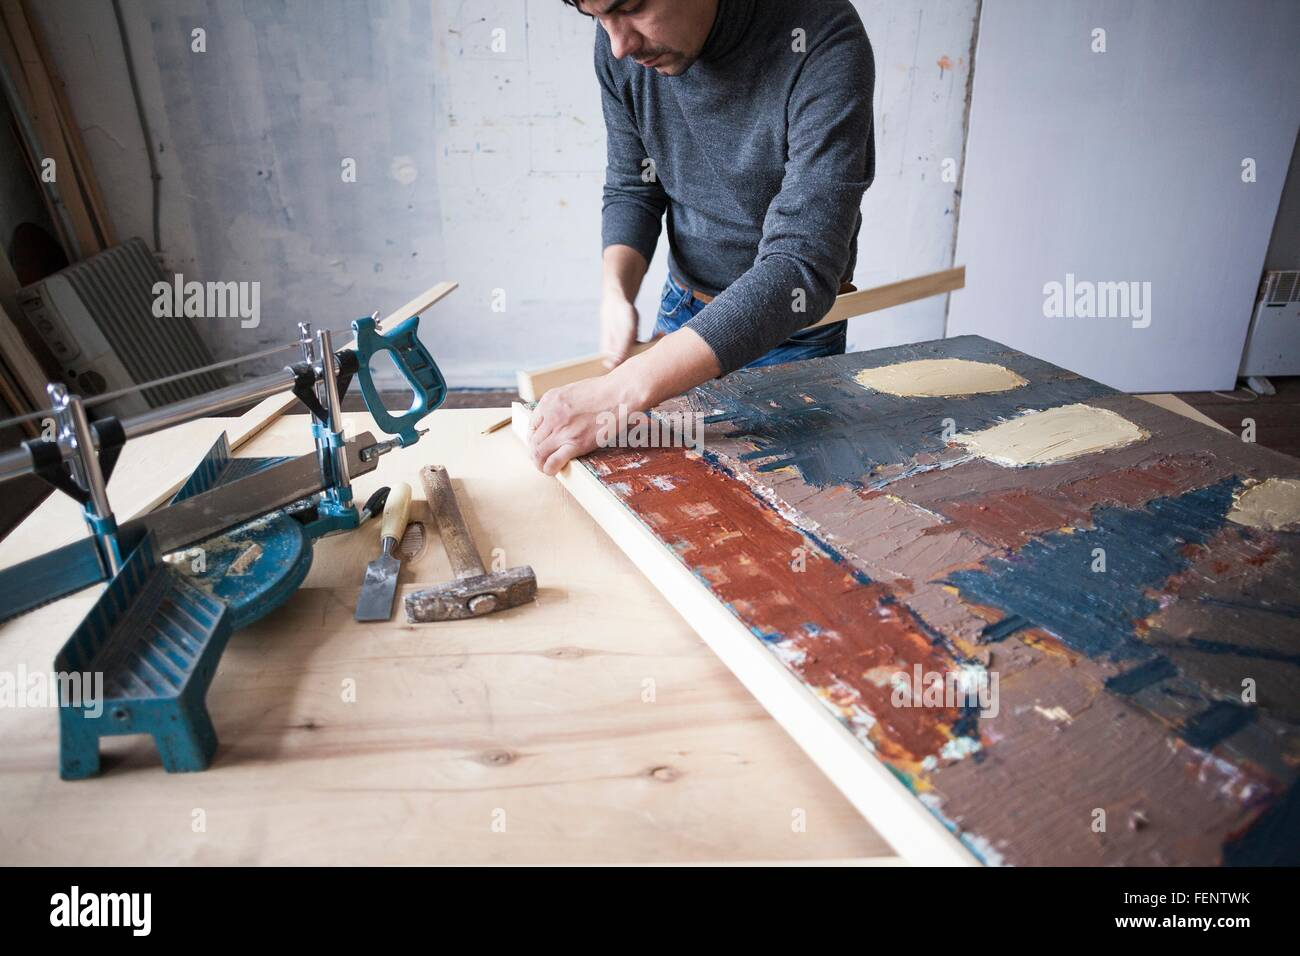 Male artist, framing artwork - Stock Image